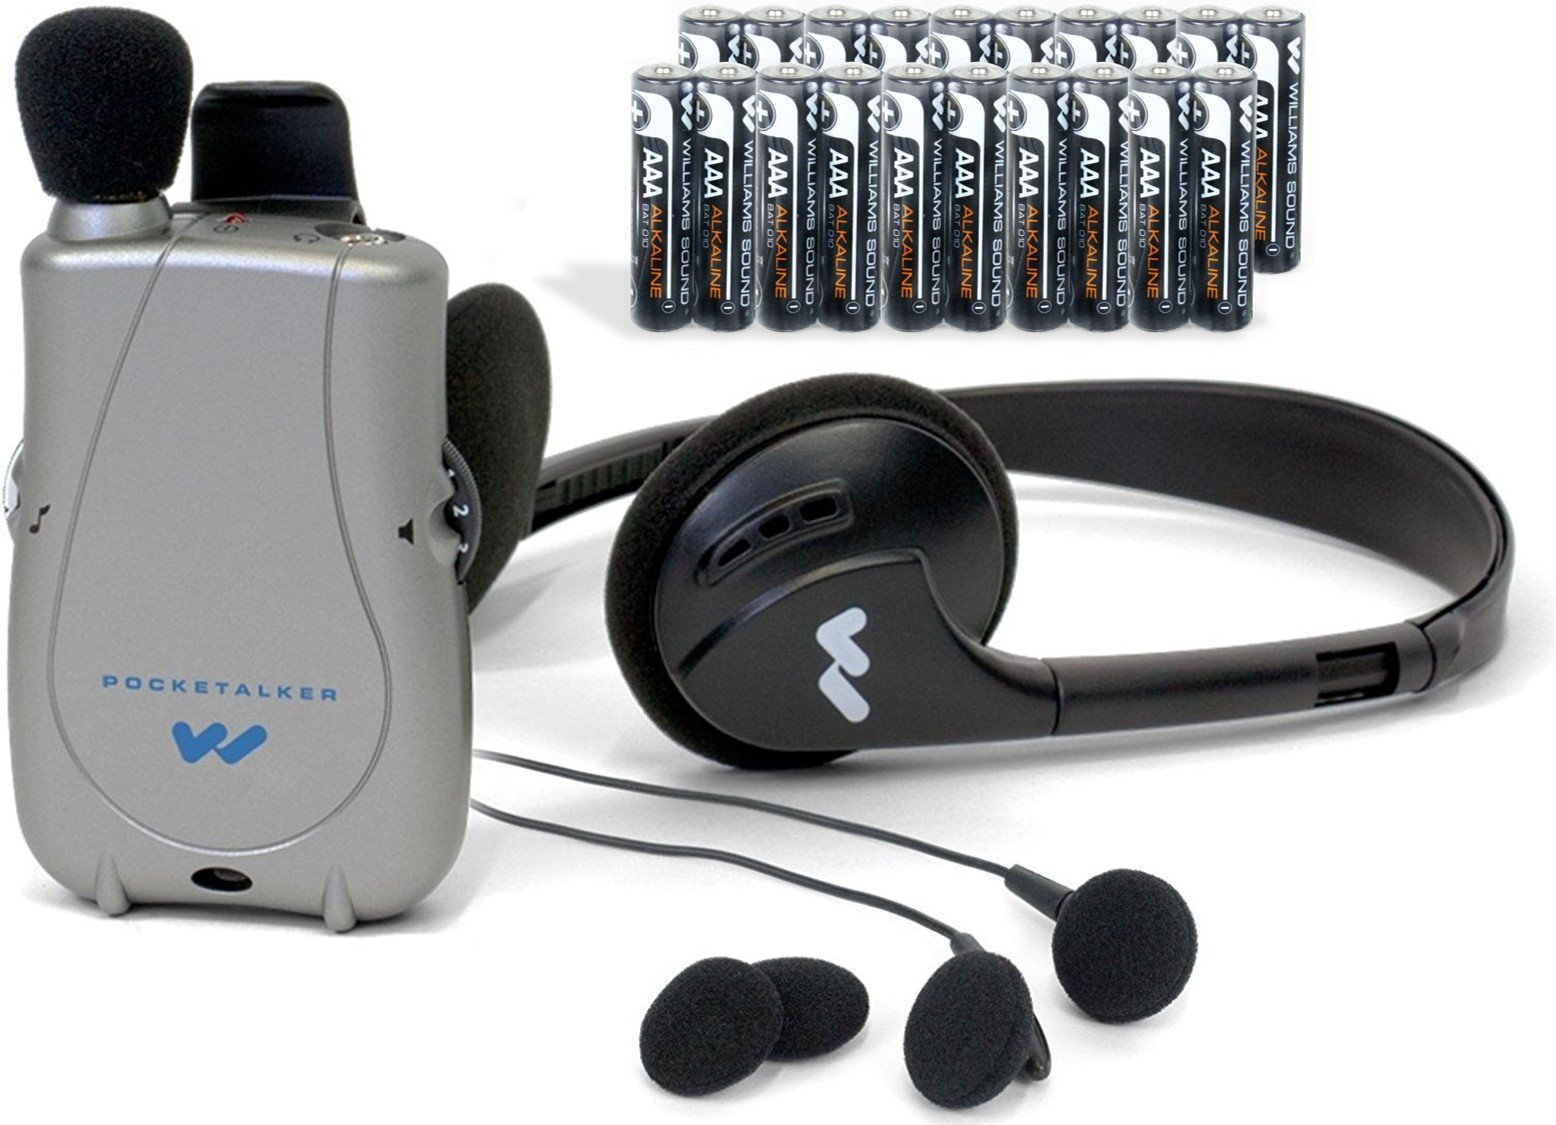 ELITE PACKAGE: PockeTalker Ultra w/ Headphone & FREE Dual Earbuds & FREE Year Supply of Batteries by Williams Sound